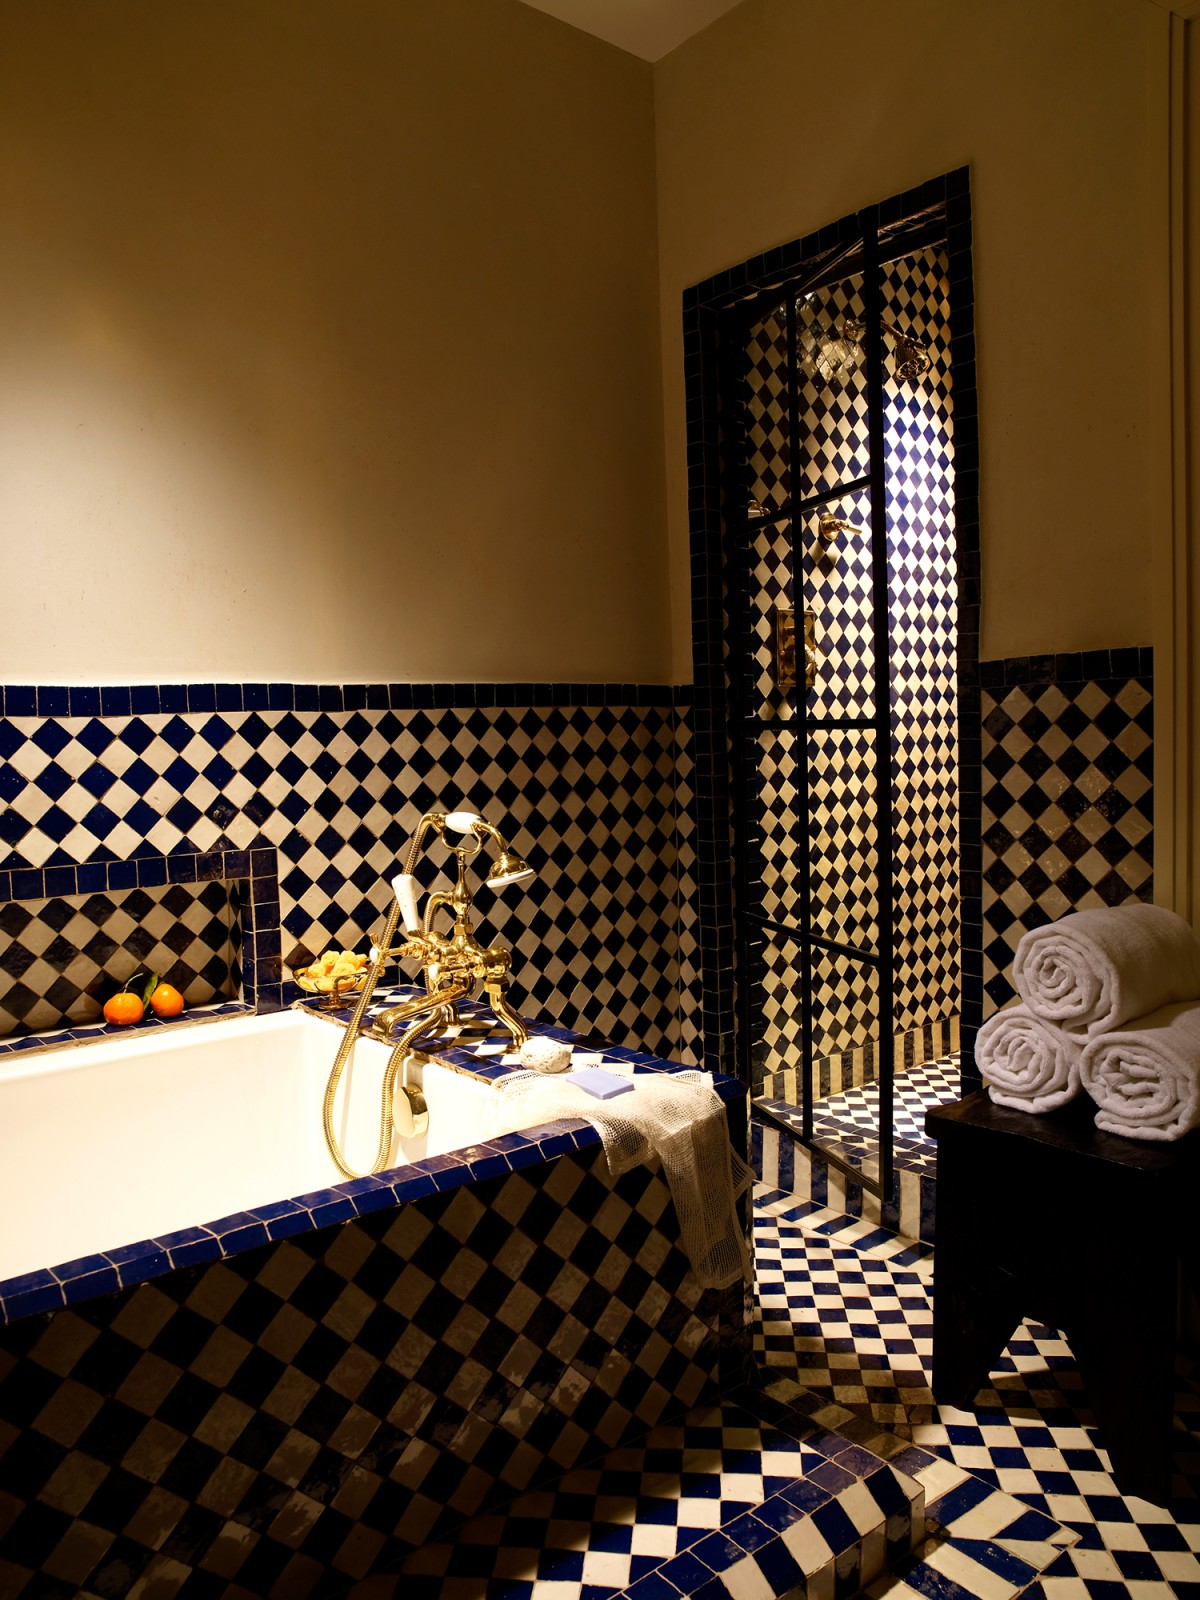 View of the tub, shower and patterned tile in the Deluxe King room